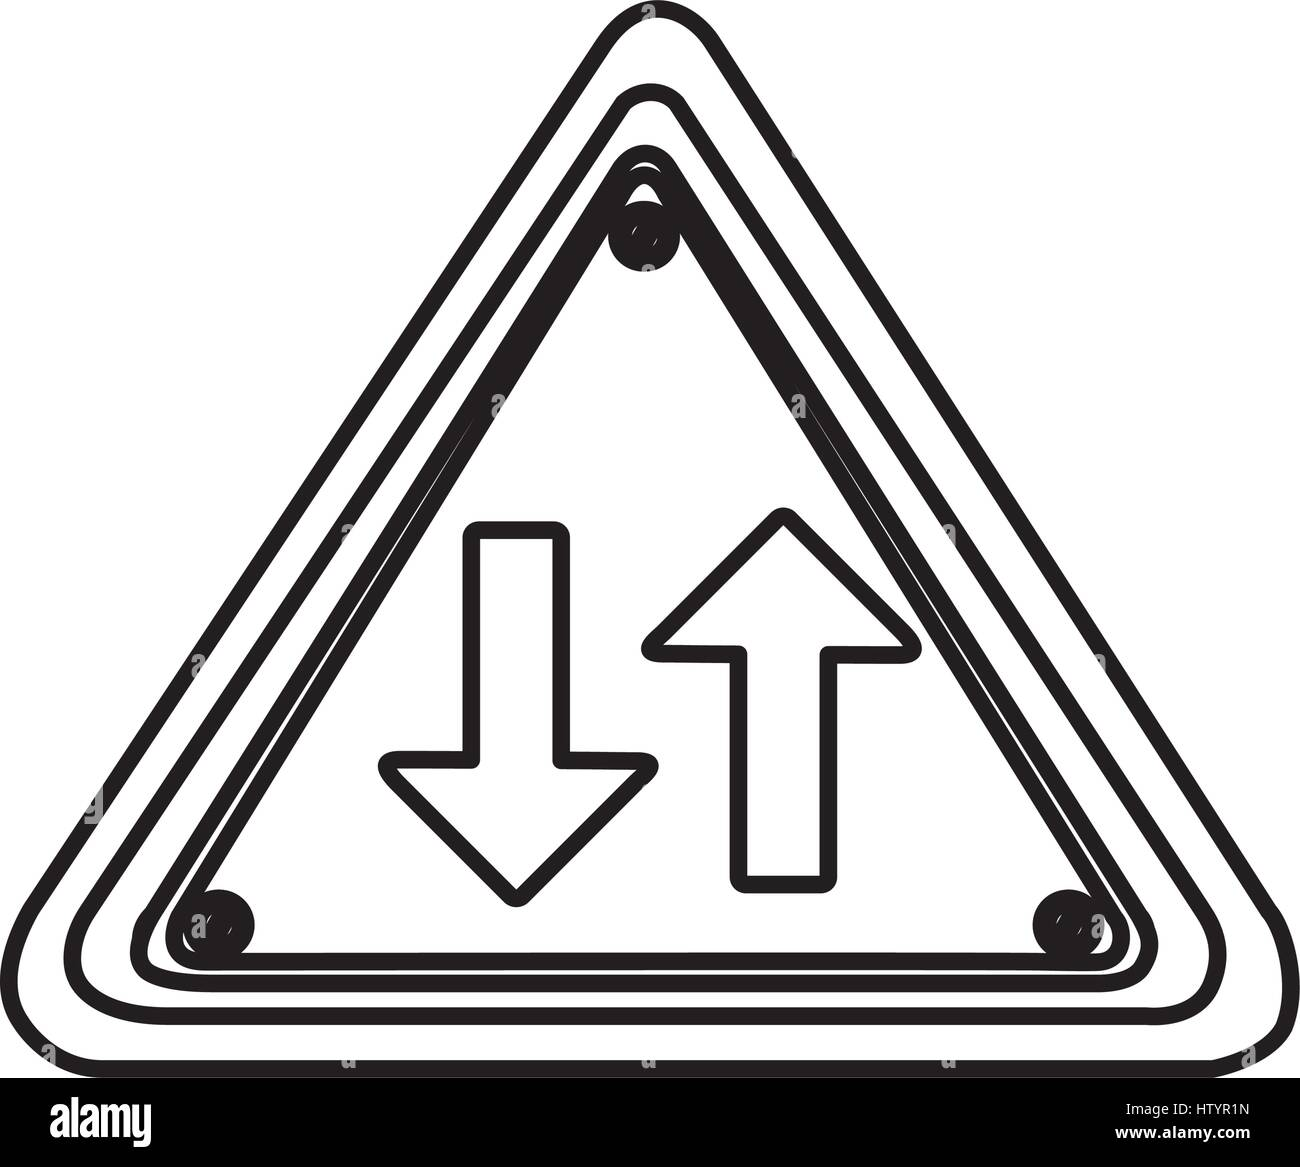 Triangle Button Stock Photos & Triangle Button Stock Images - Alamy